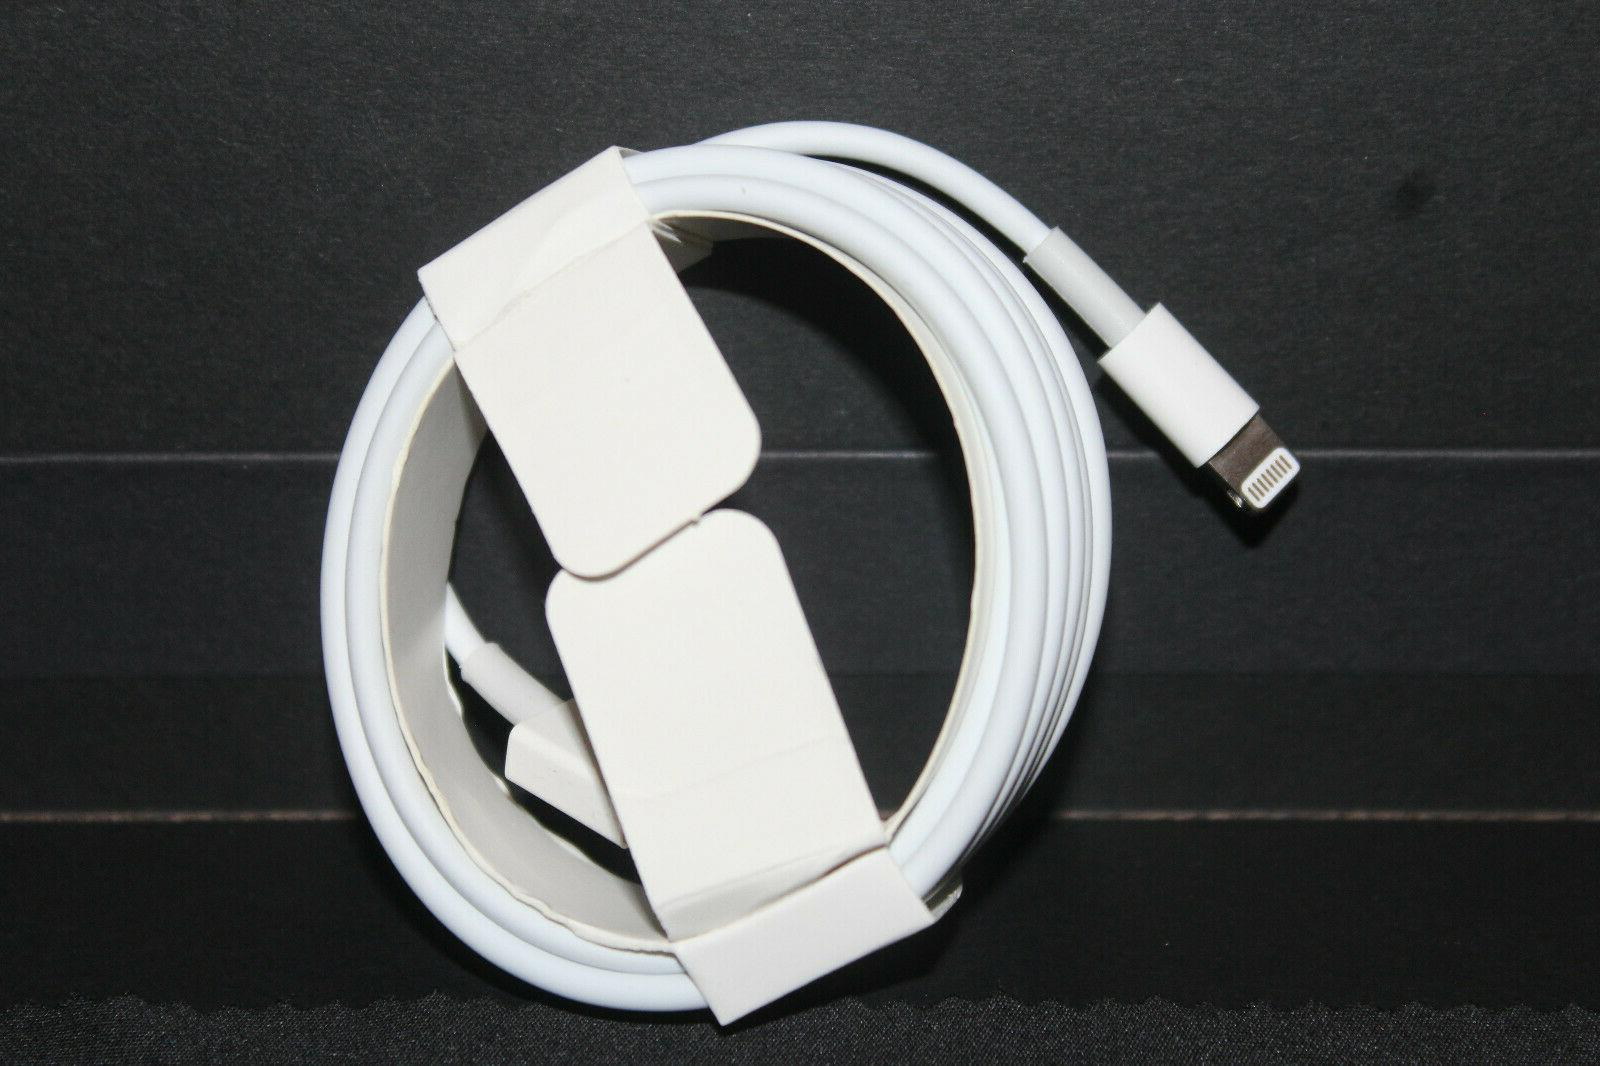 Genuine OEM Original Apple iPhone Lightning Cable Charger Cord USB